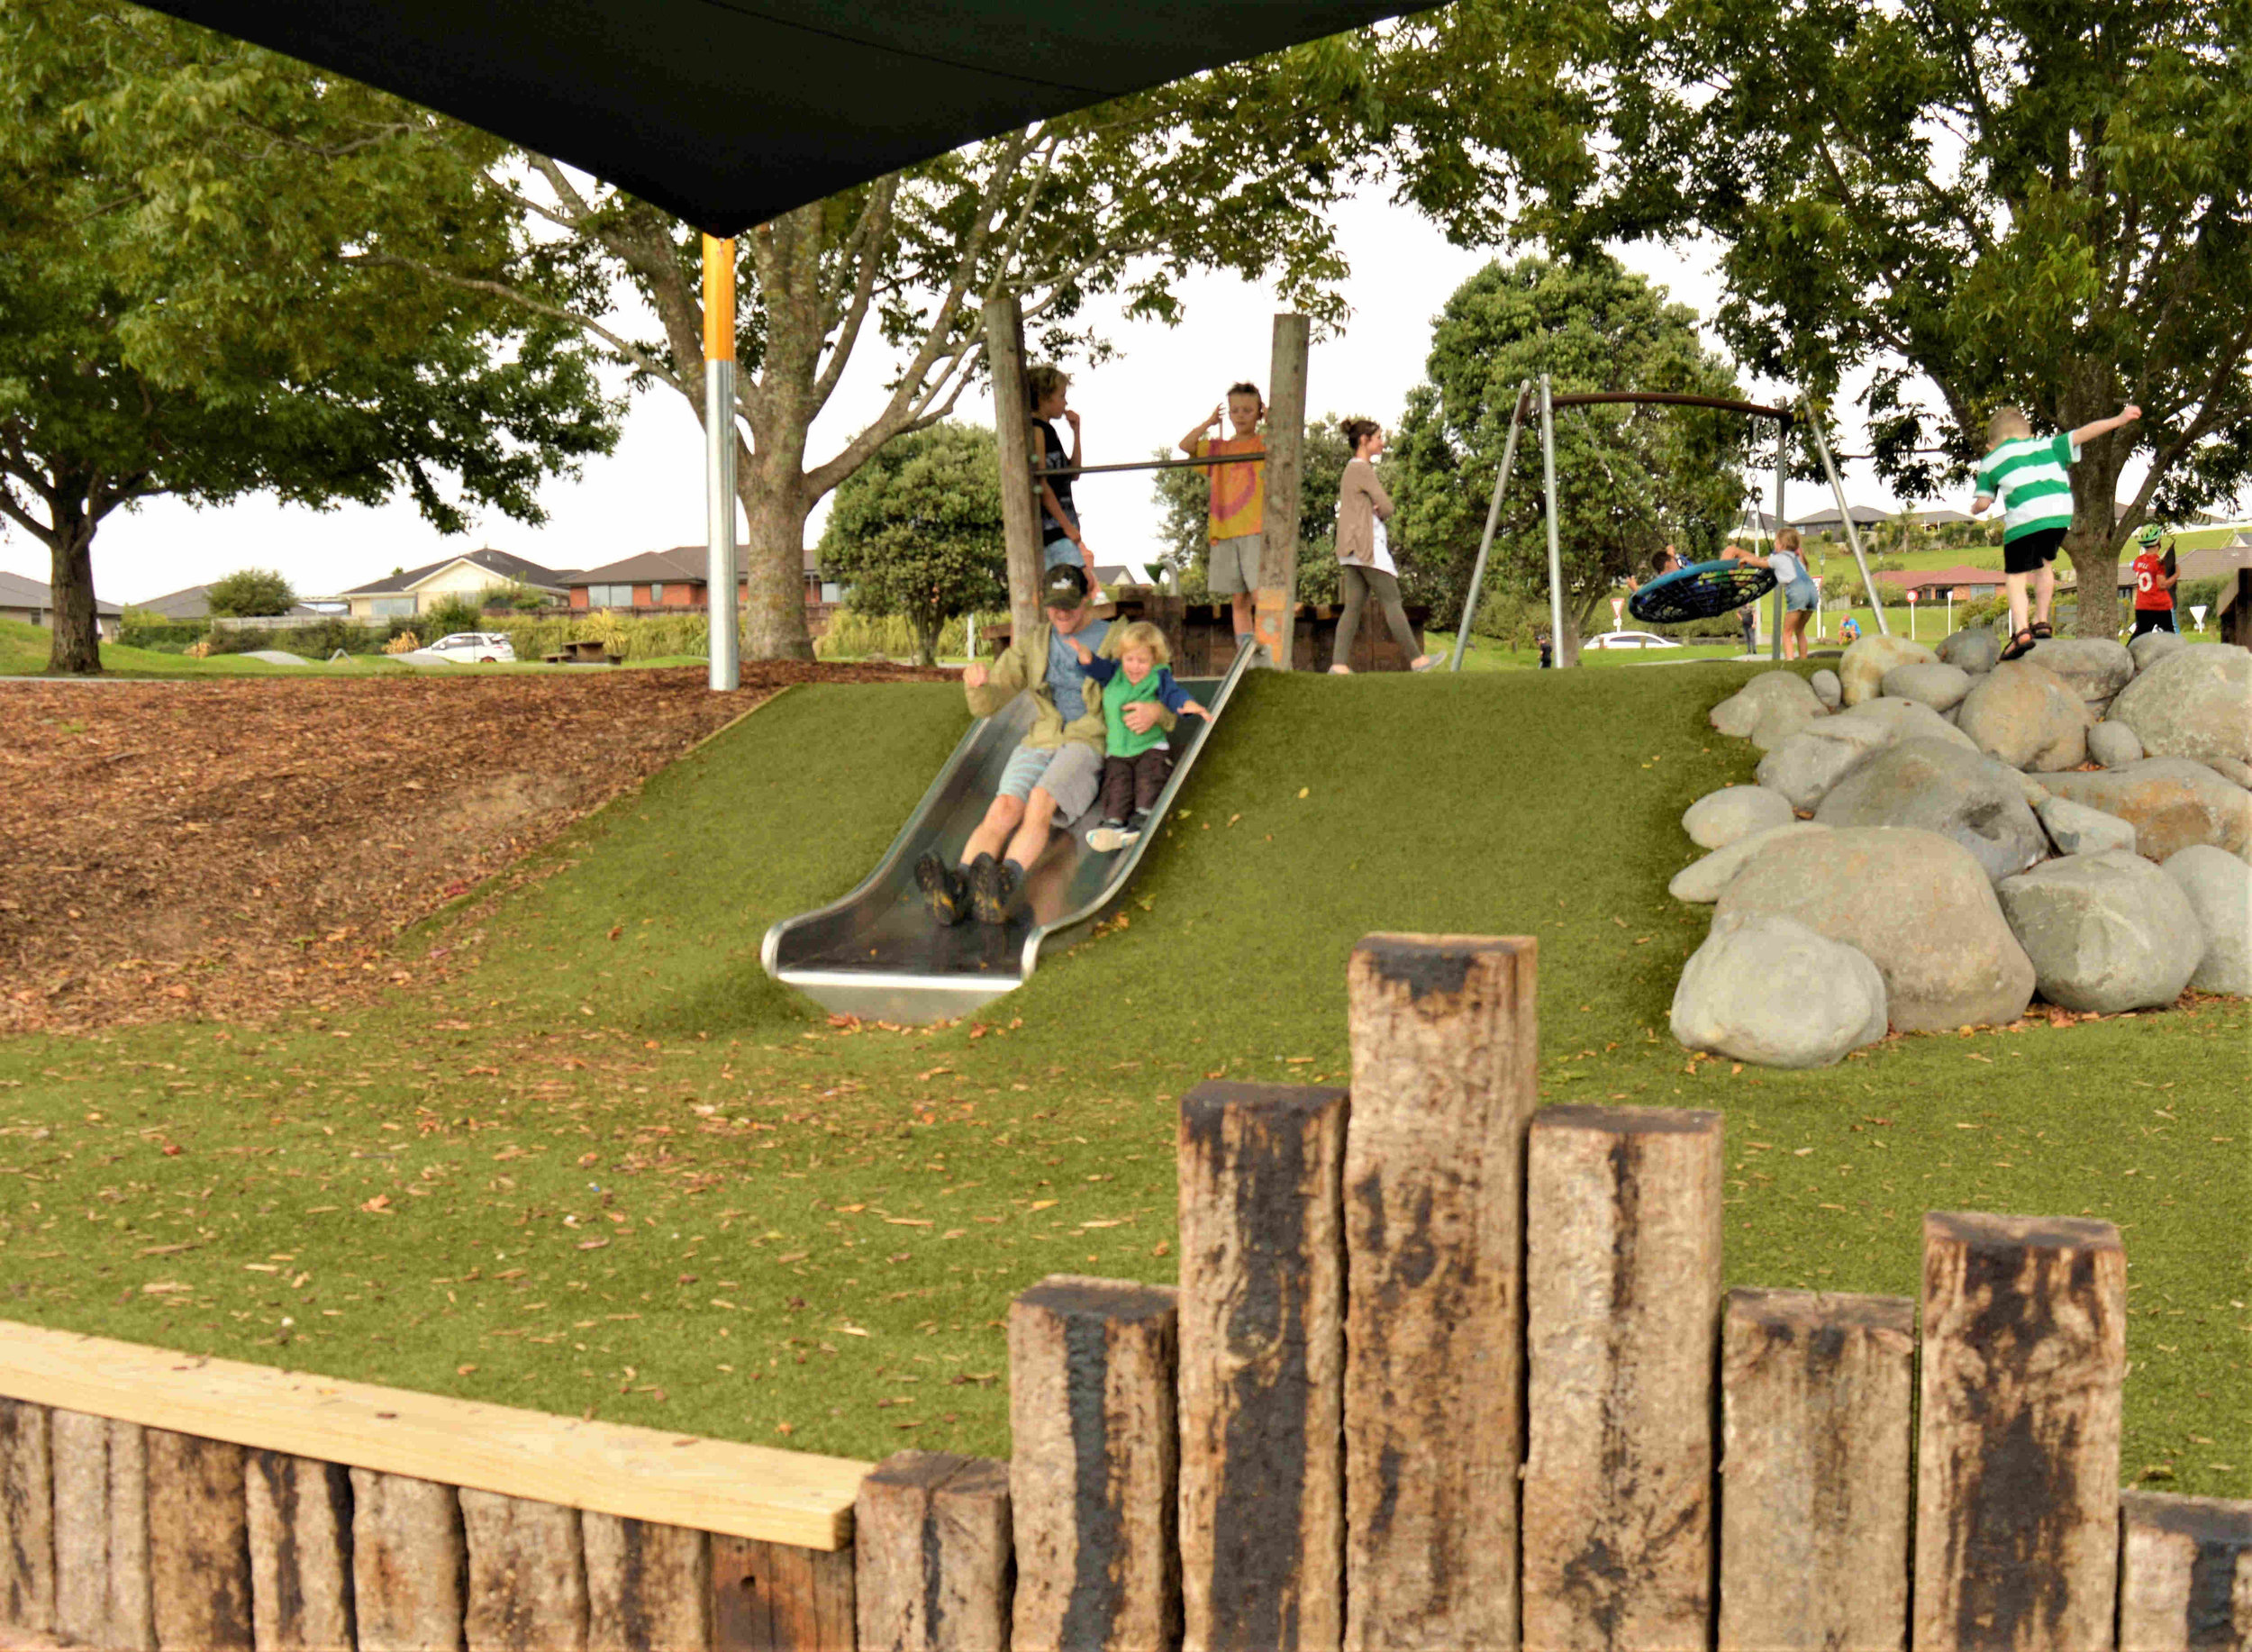 The playground has plenty of options for visitors of all ages.